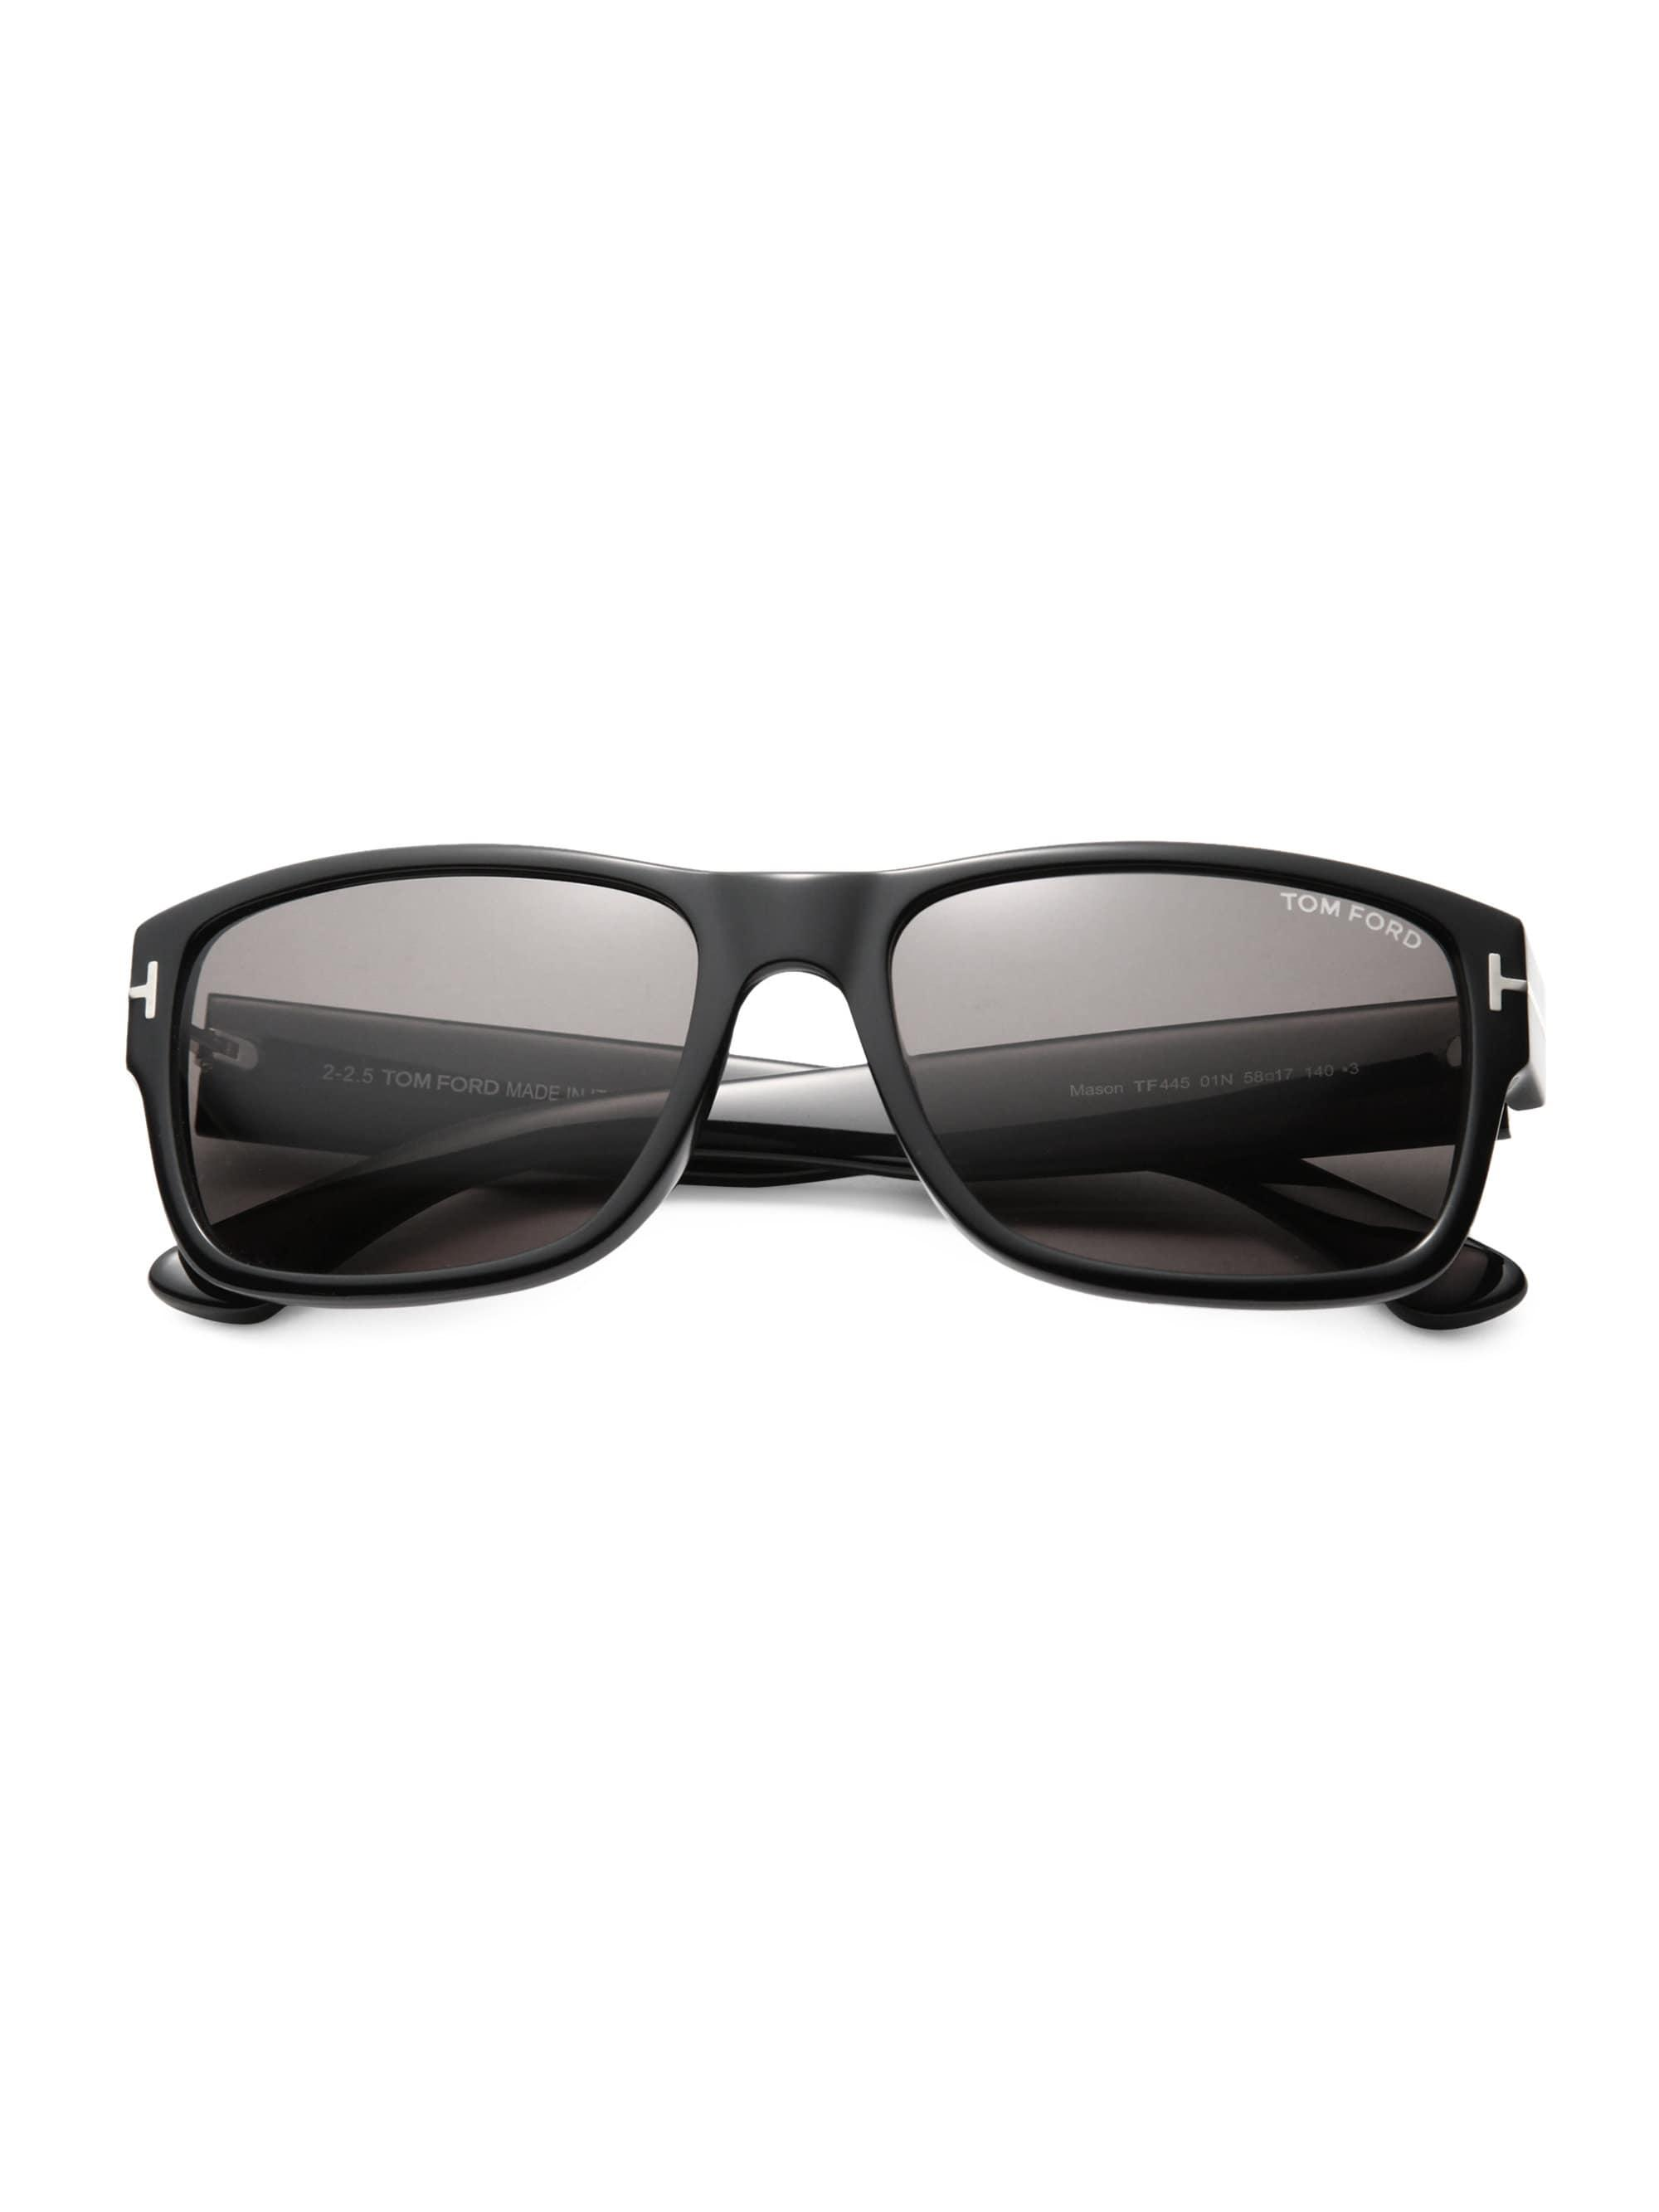 af674630a680 Lyst tom ford mason rectangular sunglasses in black for men jpg 2000x2667  Mason tom ford